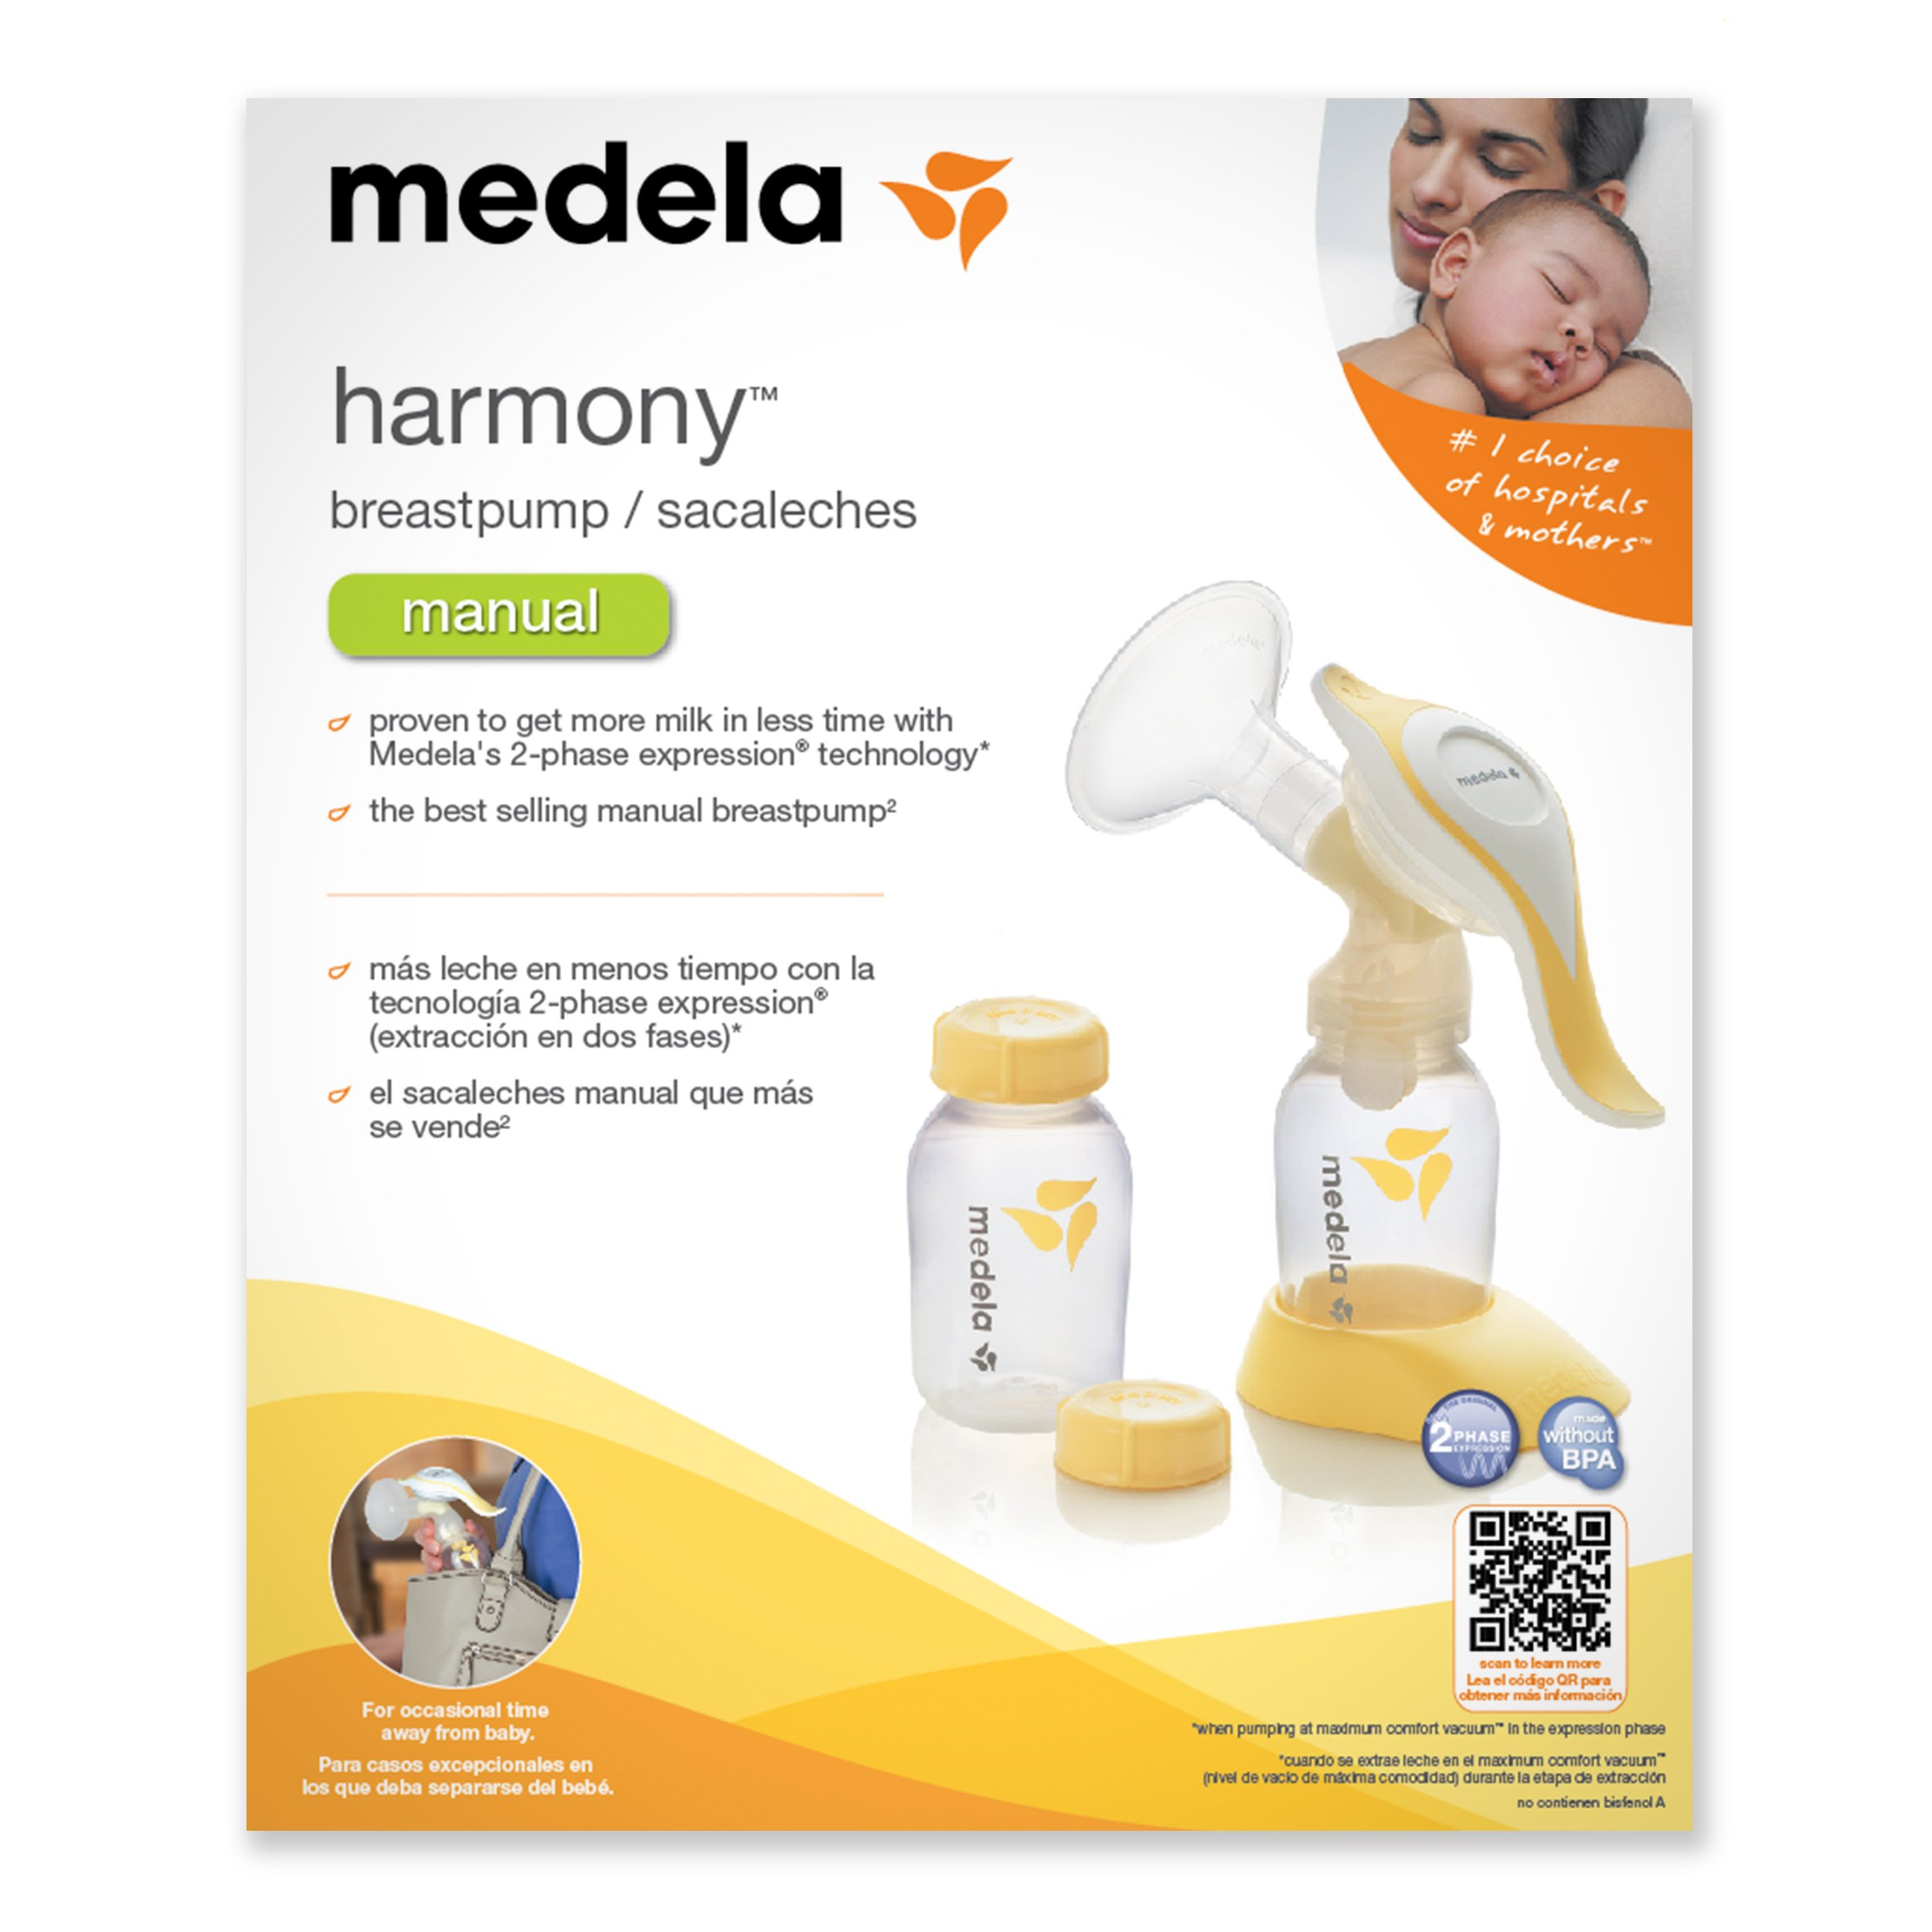 medela harmony manual breast pump shop medela harmony manual rh heb com Medela Harmony Parts Medela Hand Pump